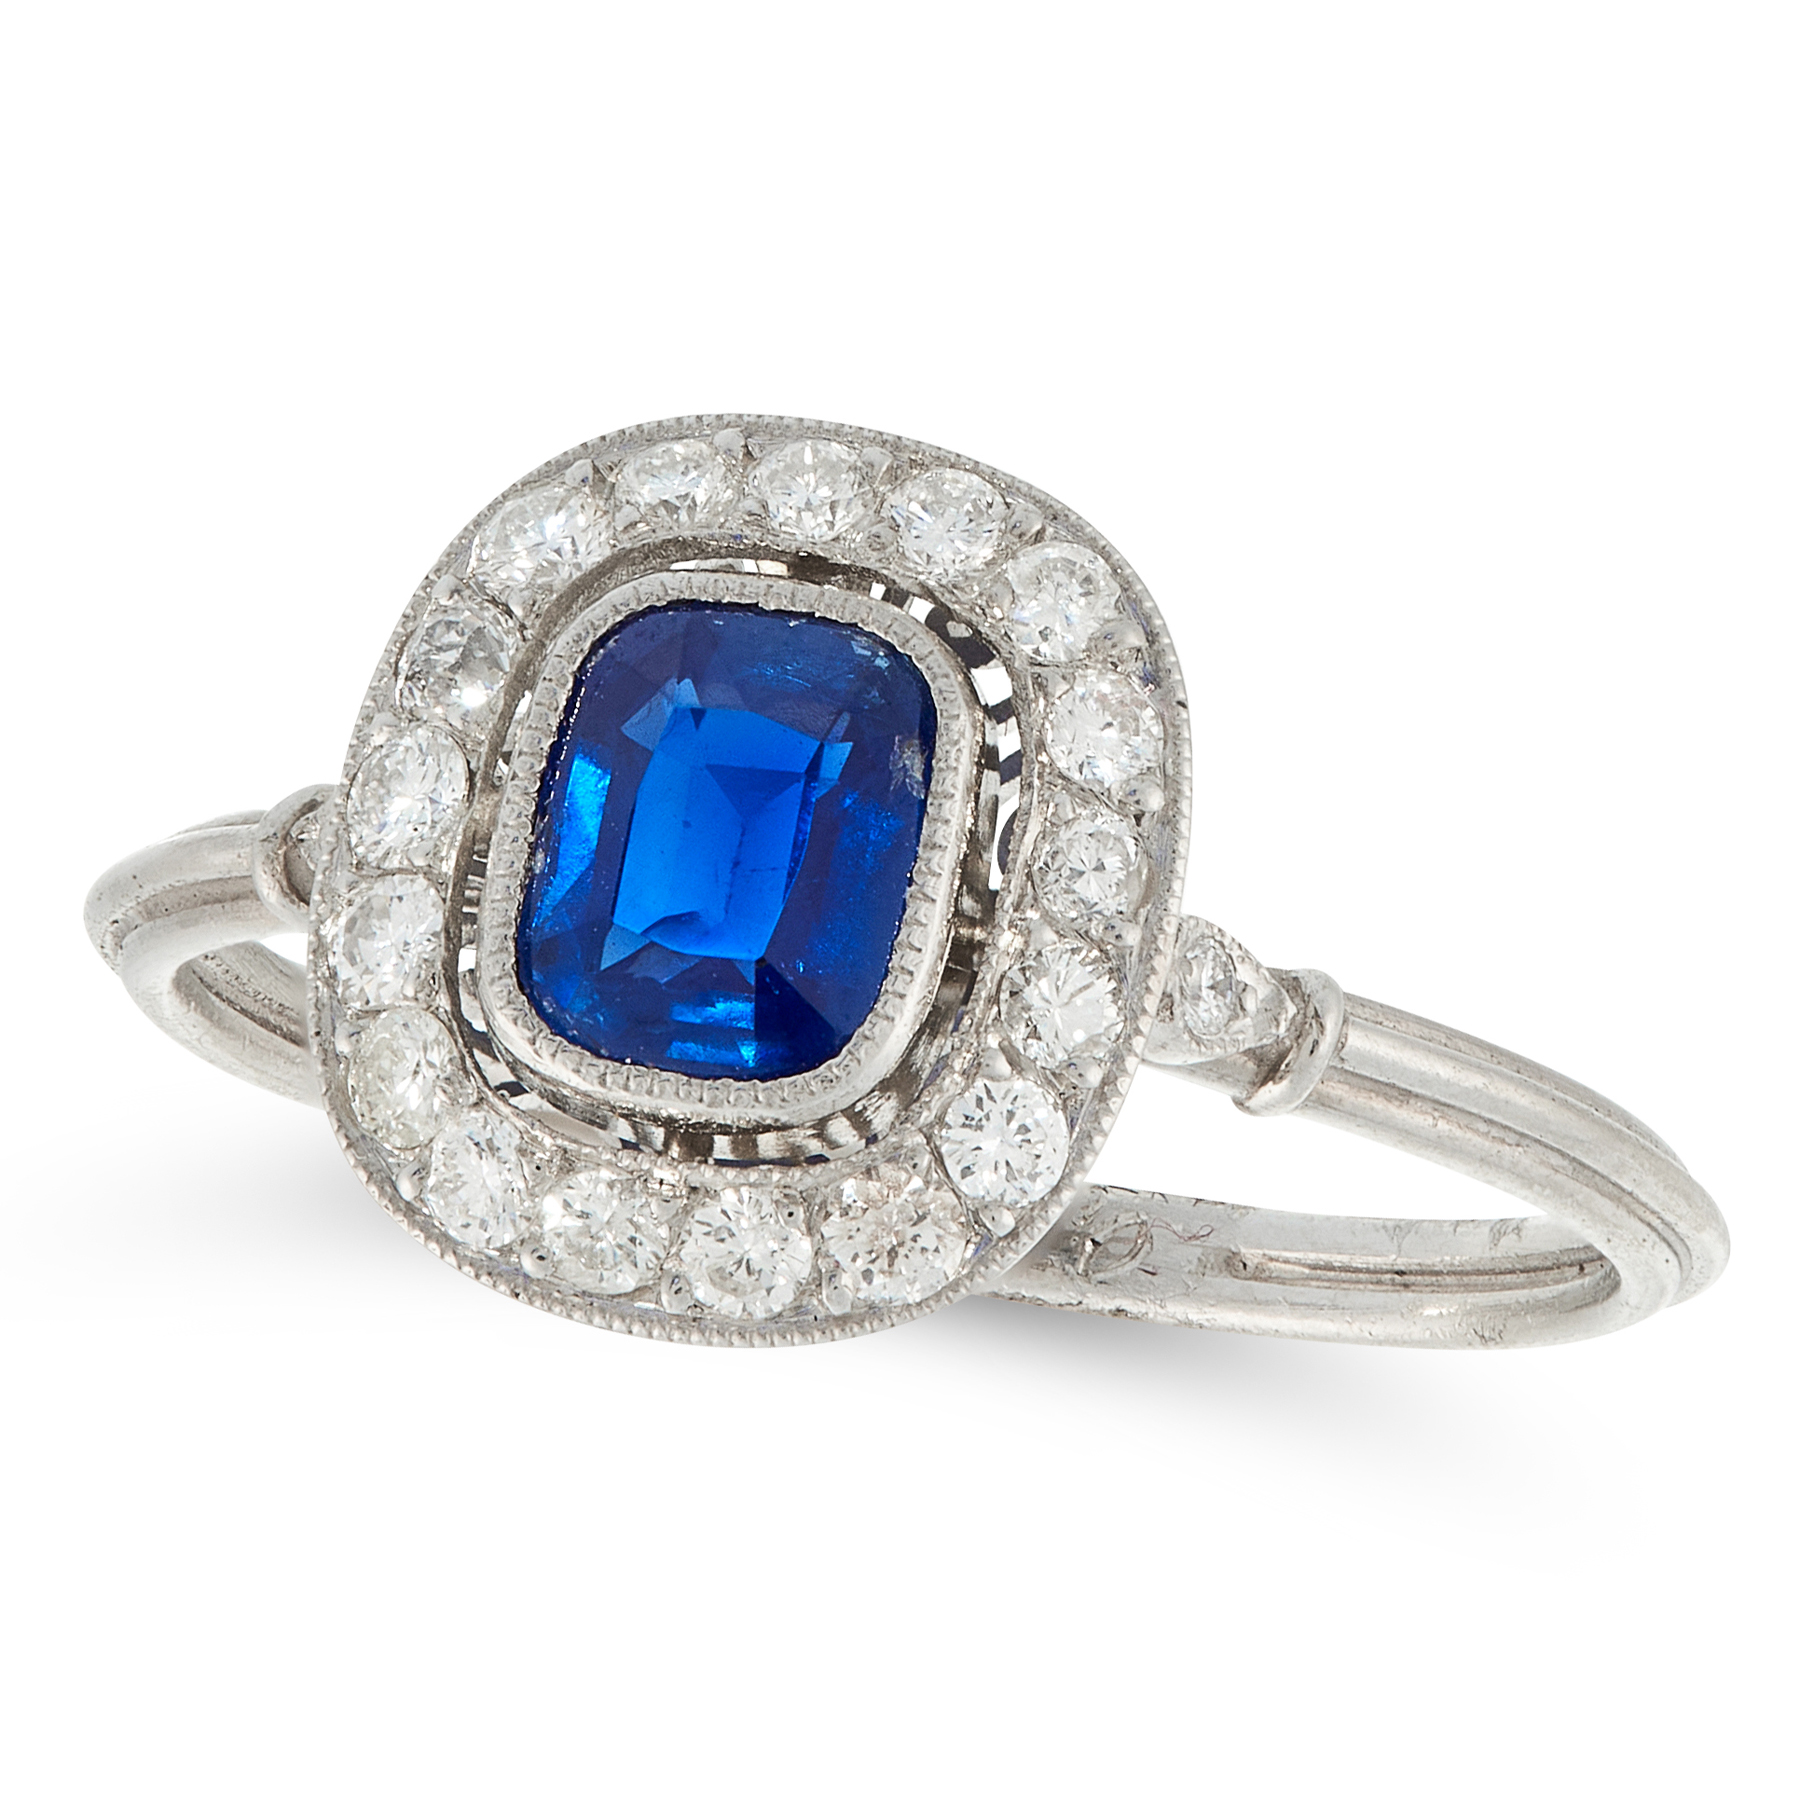 A SAPPHIRE AND DIAMOND DRESS RING in platinum, set with a cushion cut sapphire of 0.77 carats within - Image 2 of 2